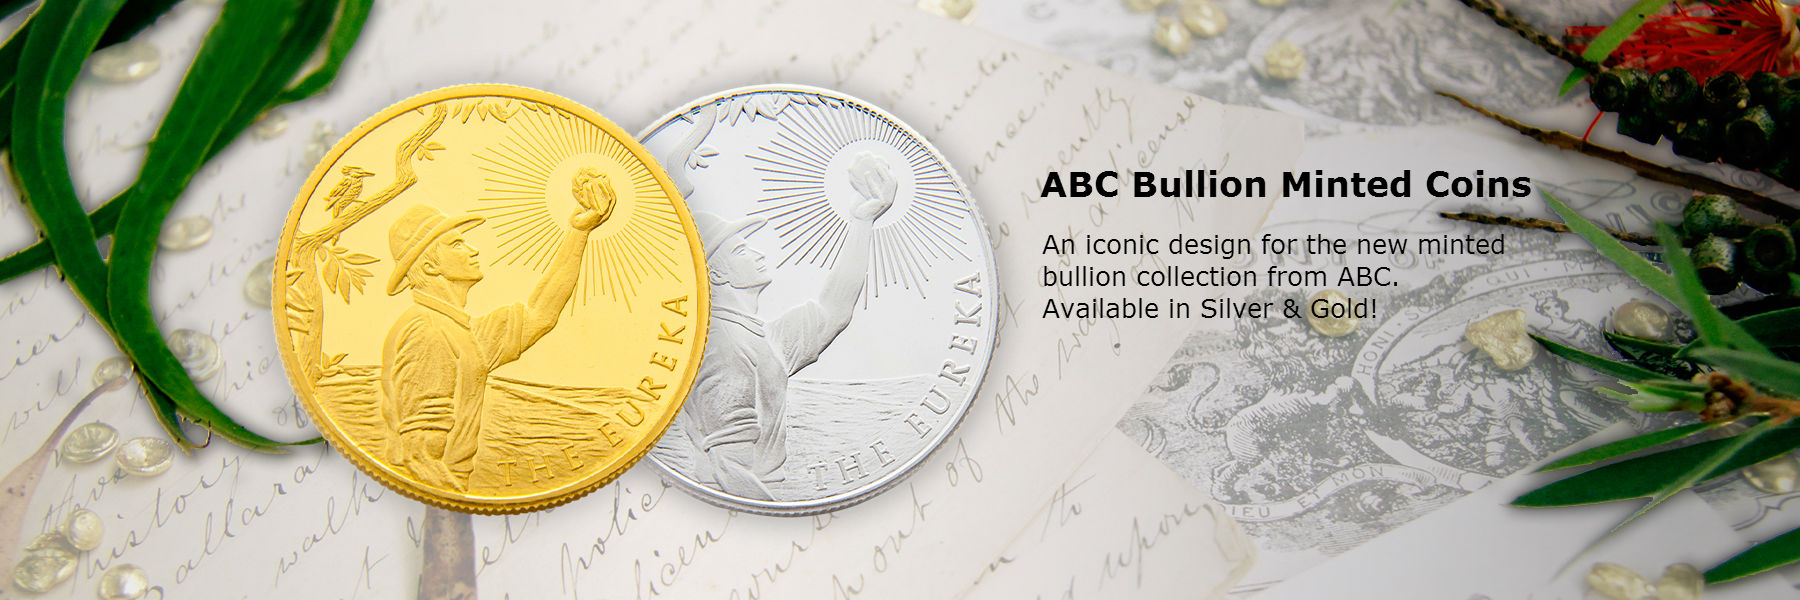 ABC Bullion Minted Coins